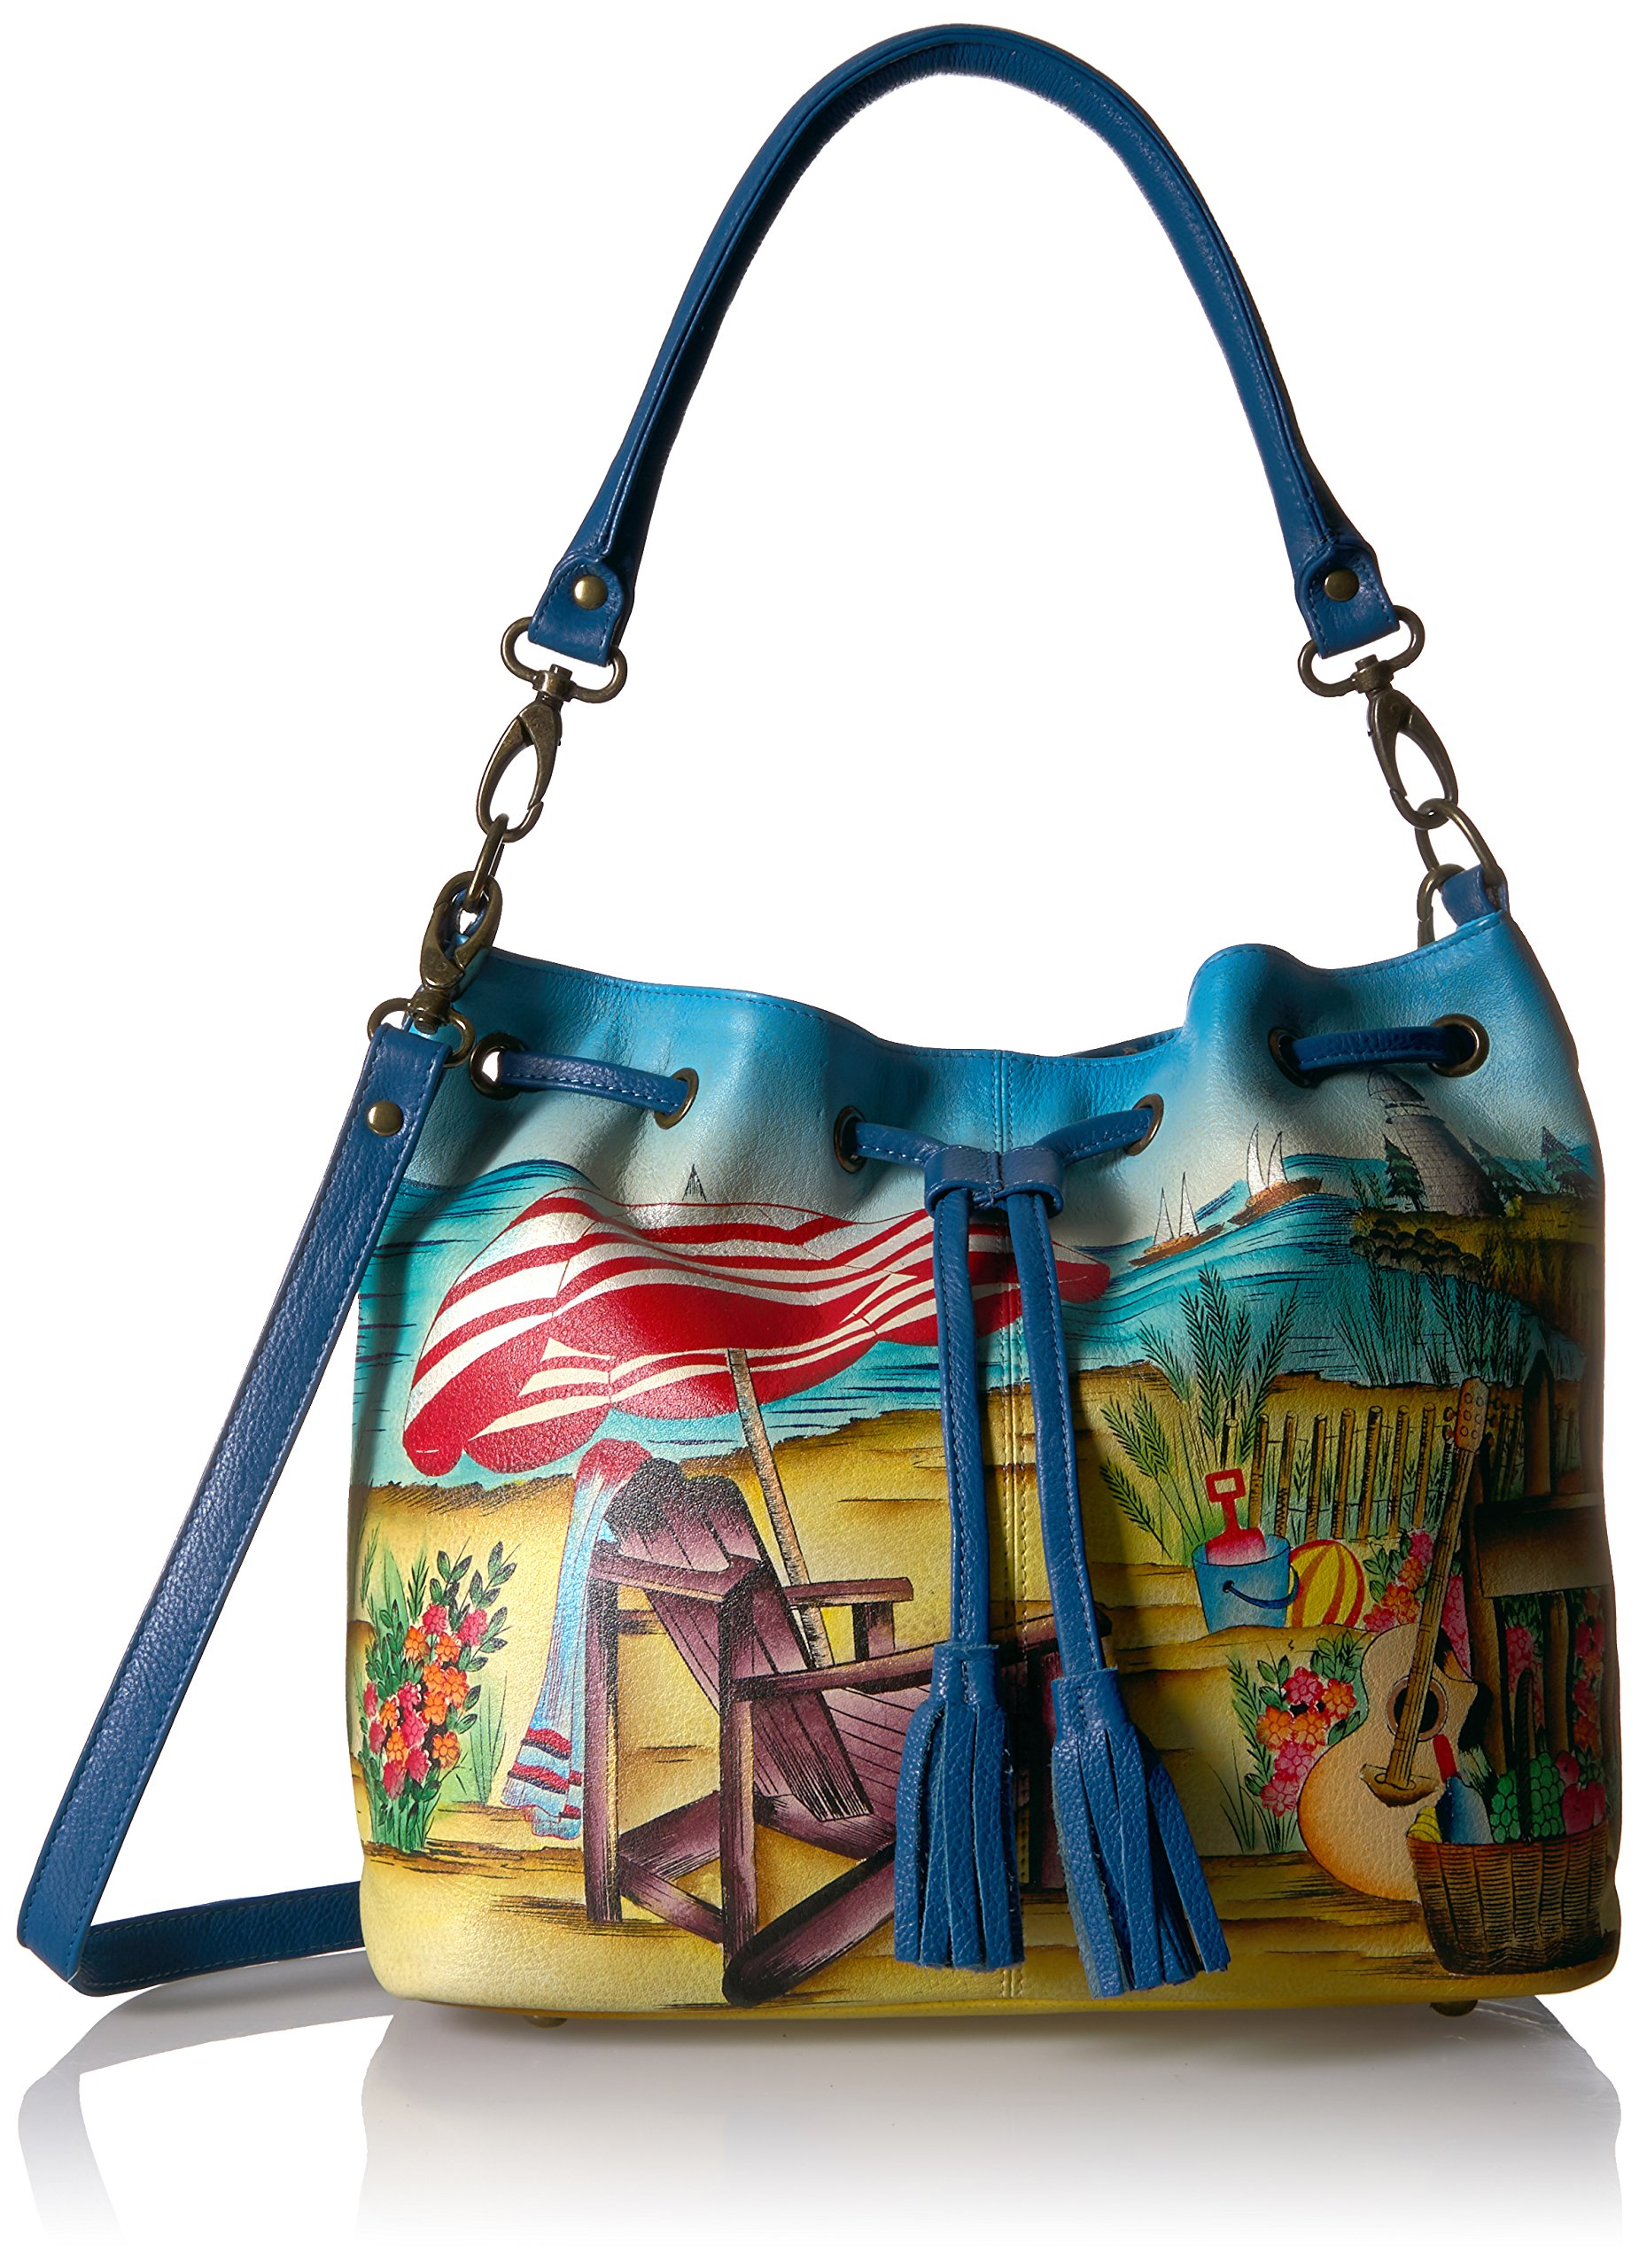 Anuschka Hand Painted Leather Drawstring Satchel